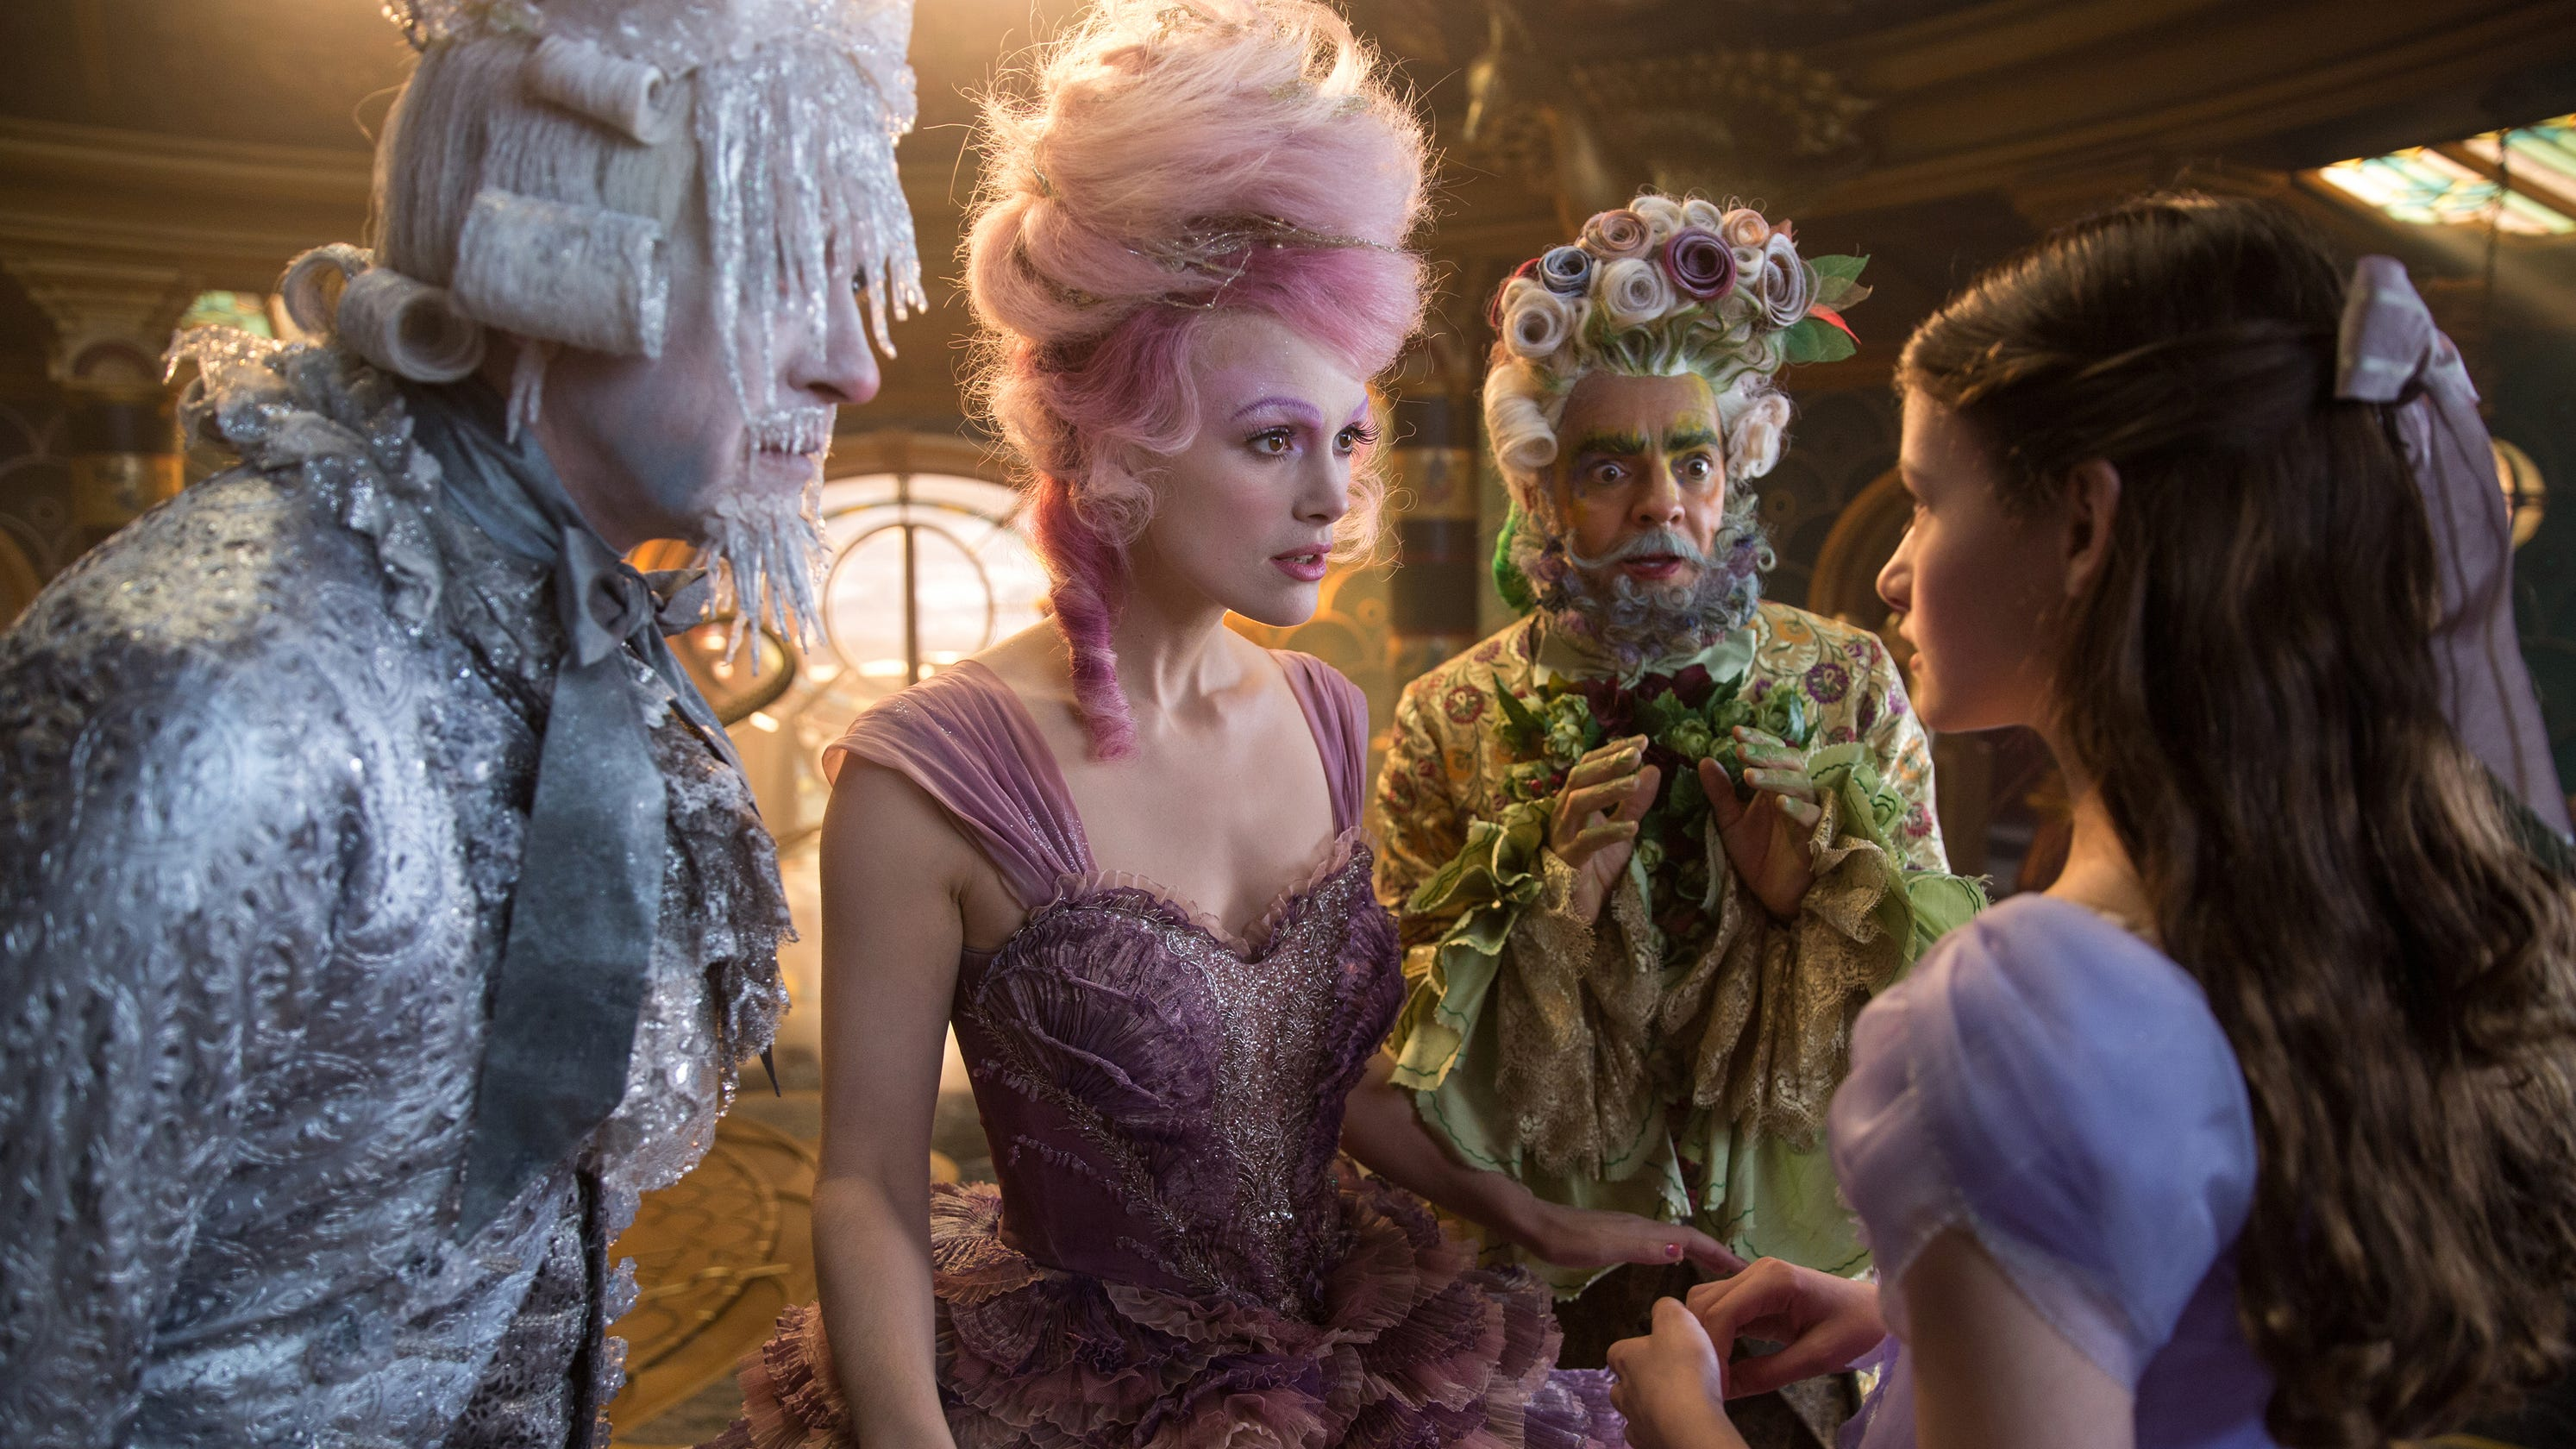 The Nutcracker\': 10 burning questions about the new Disney version